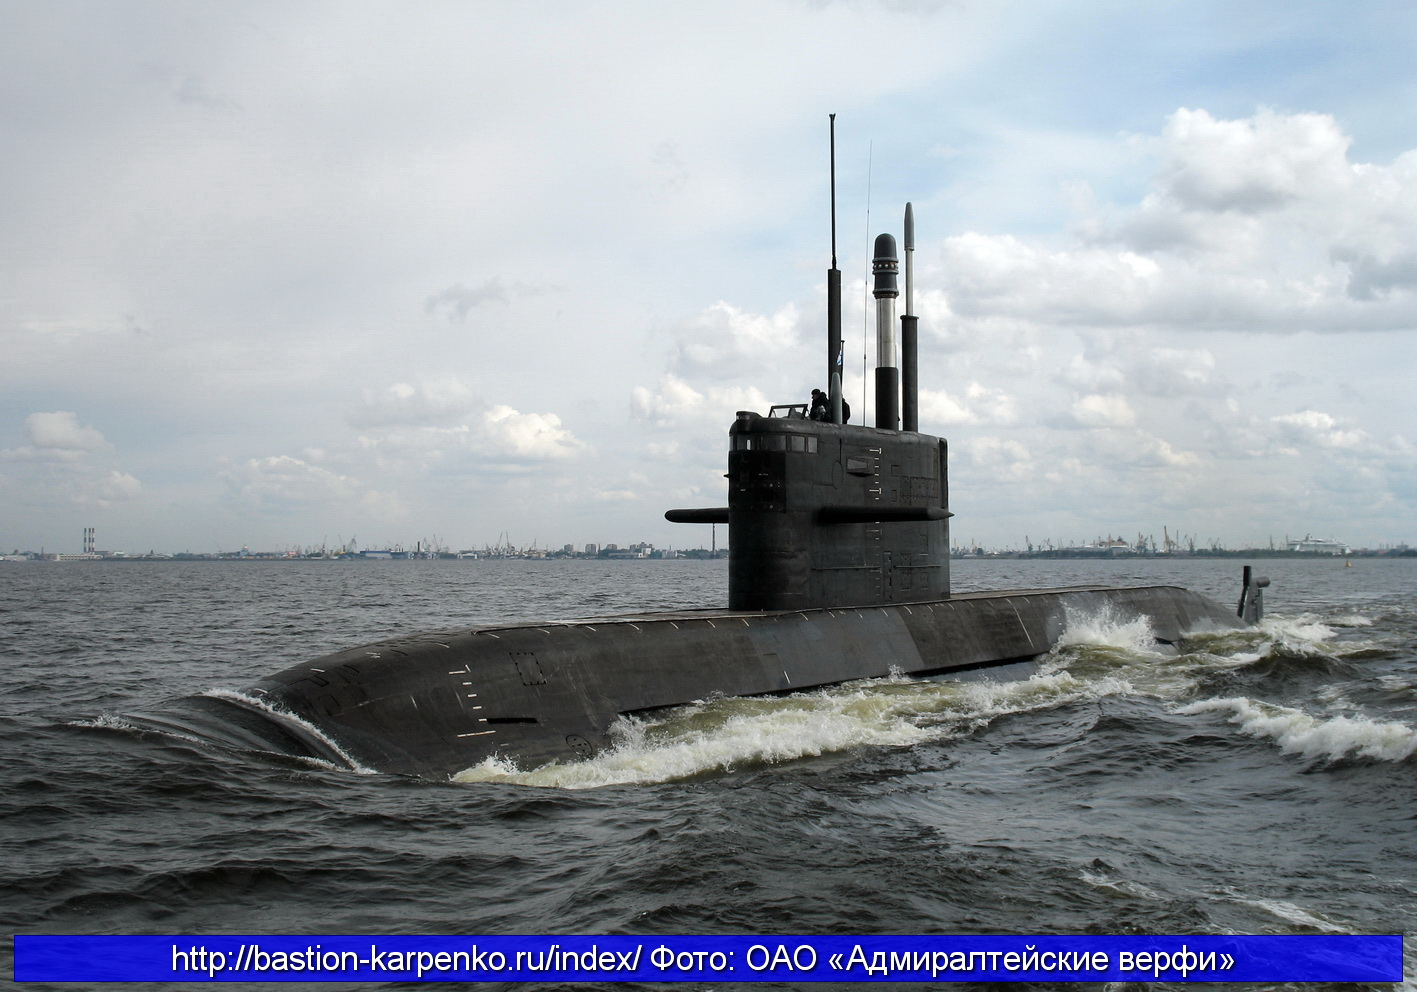 Project Kalina Submarine 677_adm_verf_2013_01